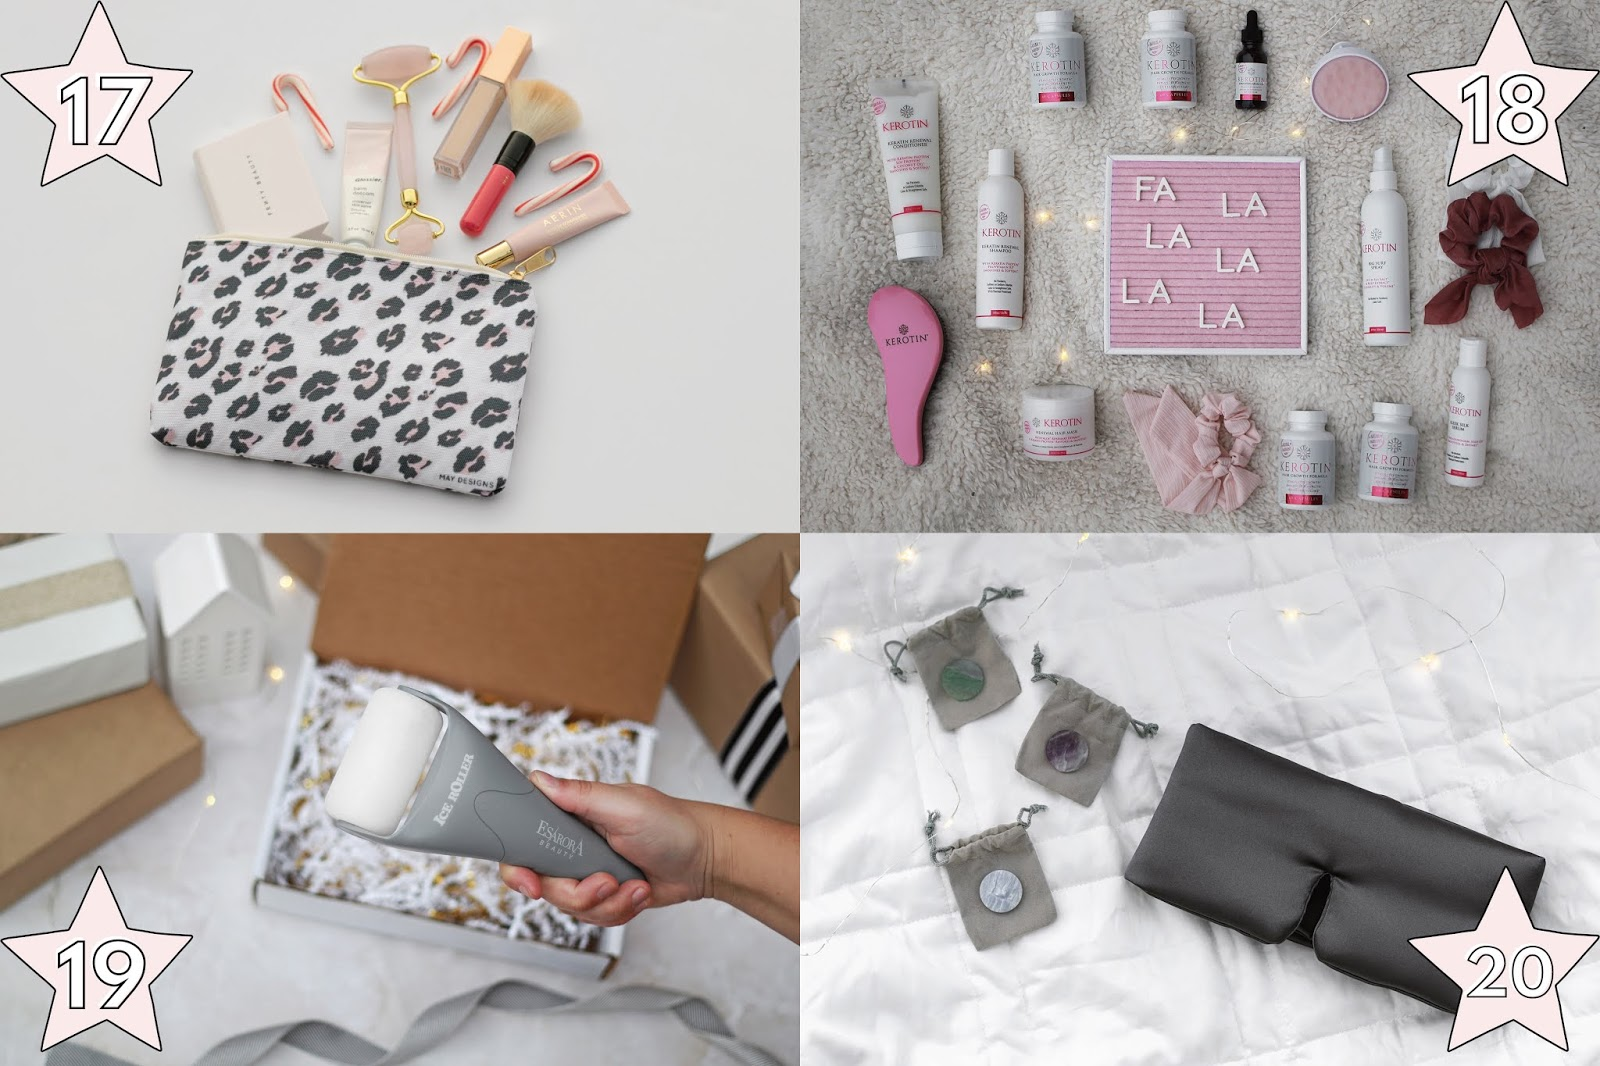 unique affordable holiday gift ideas for her, may designs leopard zipper pouch gift idea for her, kerotin haircare best haircare products gift ideas for her, ice roller amazon gift idea for her, baloo living chakra sleeping mask with stones gift idea for her, holiday christmas gift ideas for her